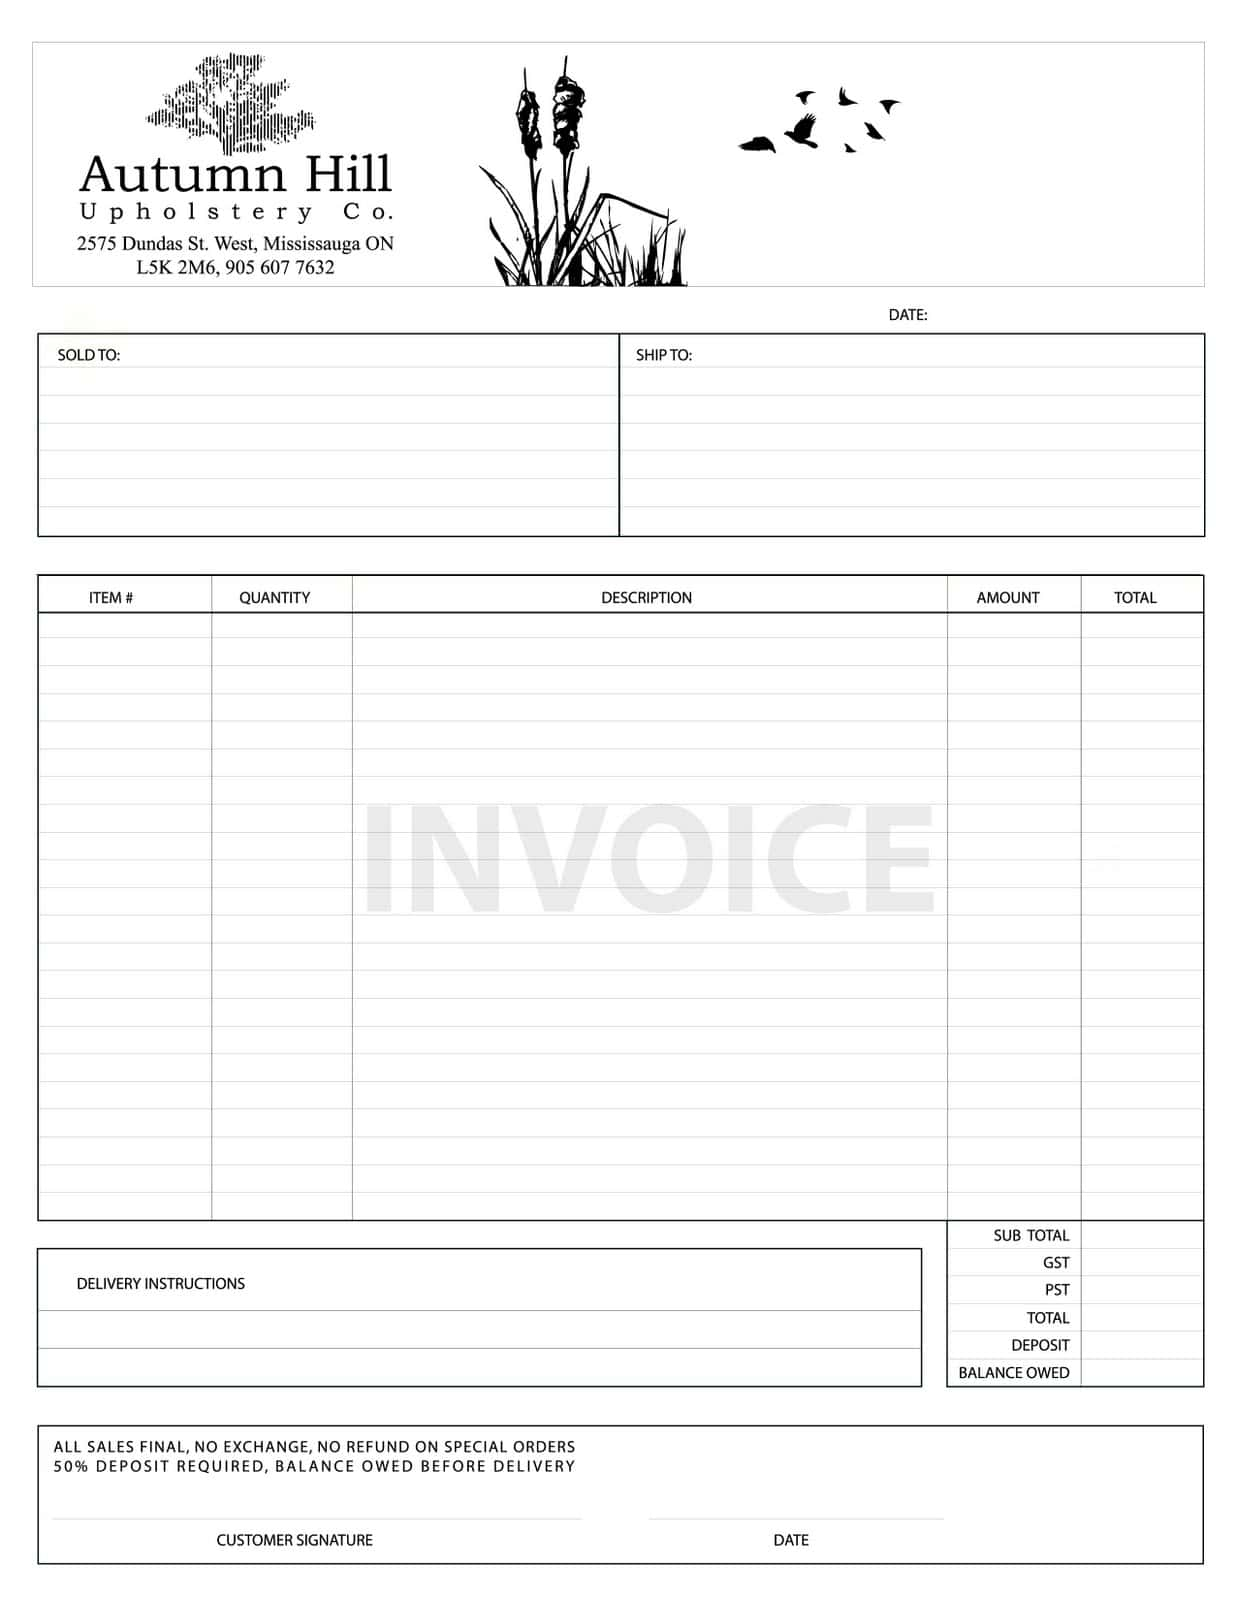 Invoice Template For Graphic Designers And Invoice Sample For Interior Design Works